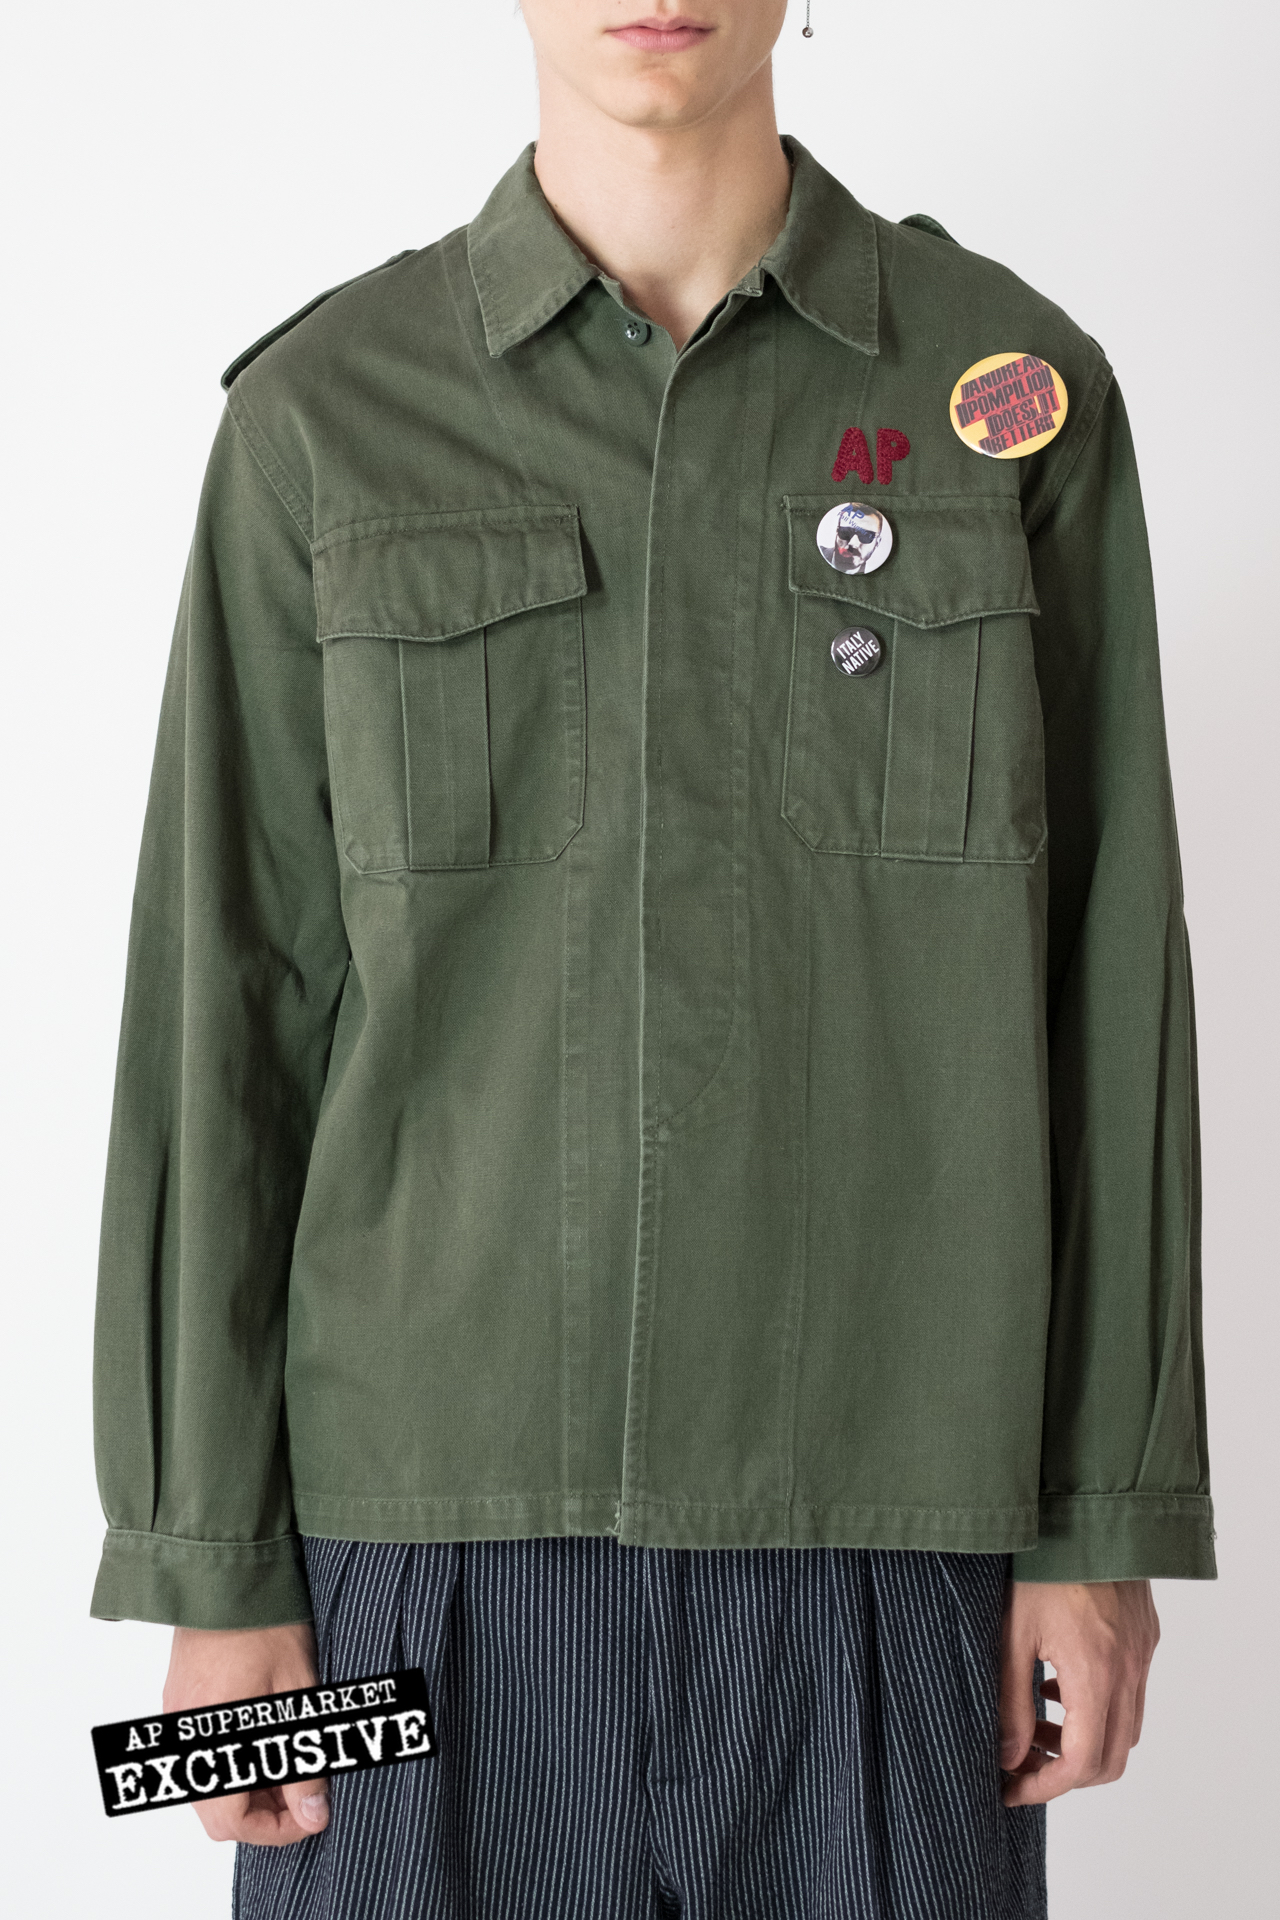 Andrea Pompilio Selected Jackets APmilitary